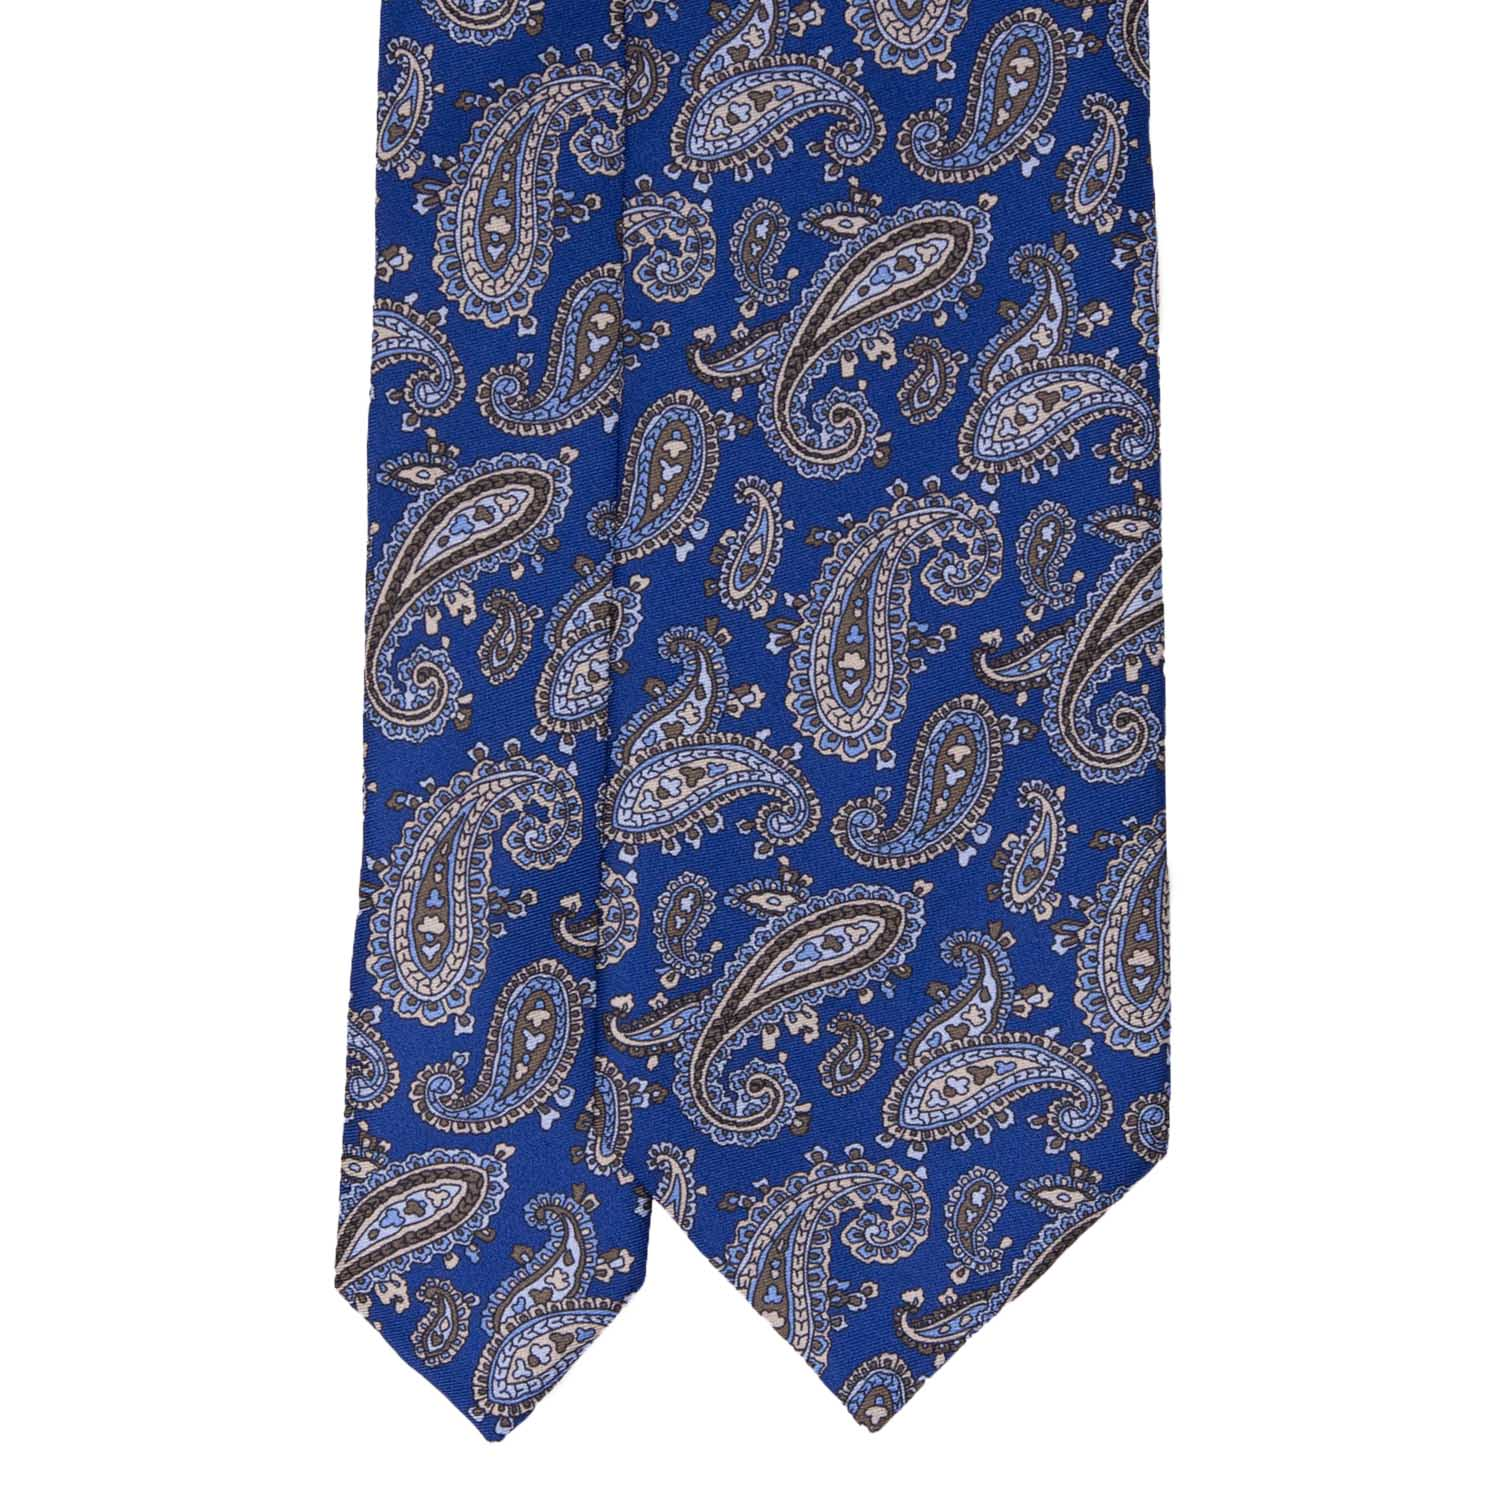 Royal Blue with Light Brown Paisley Pattern Silk Tie